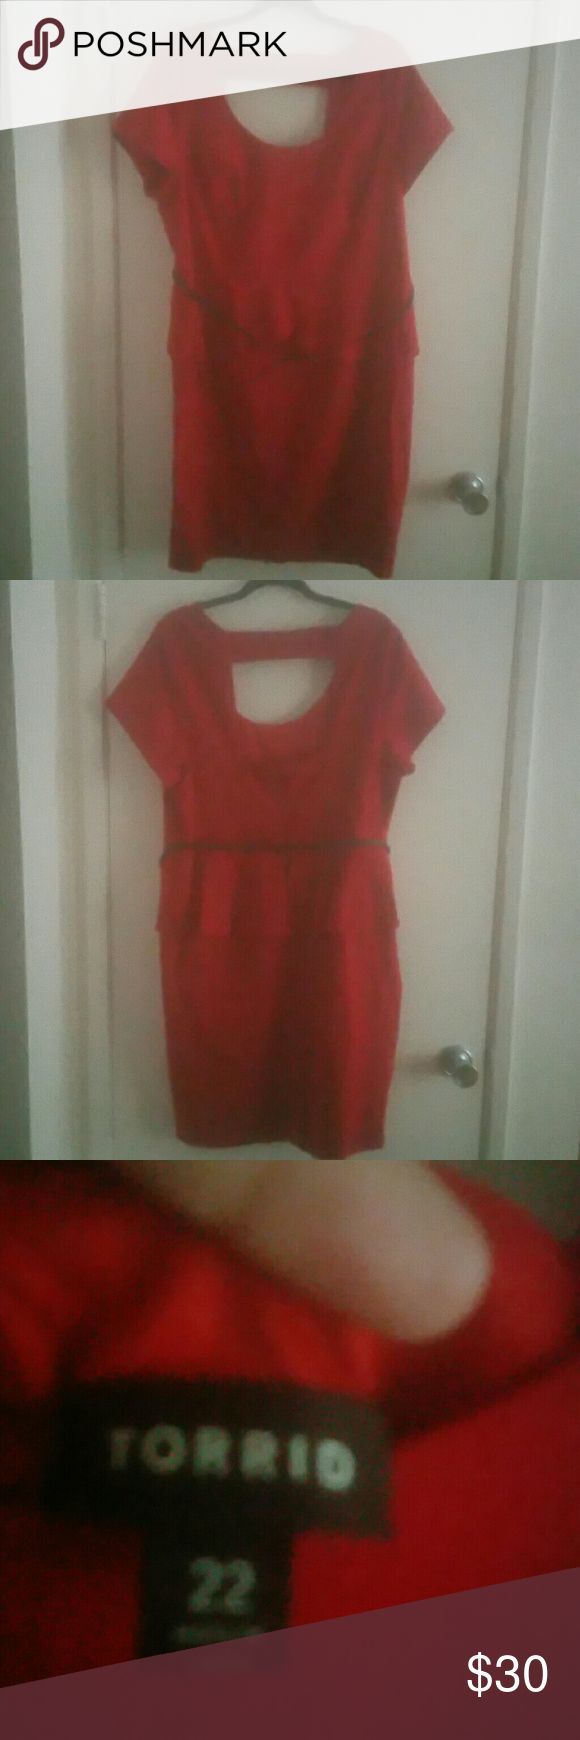 Torrid Red Retro Peplum Dress Size 22 Torrid retro red peplum dress. Peephole back. Very flattering. Excellent condition, only used once. Beautiful dress for the holidays. Comes down to approximately 3 inches above the knee. I'm 5 feet 10 inches tall. Torrid  Dresses Midi